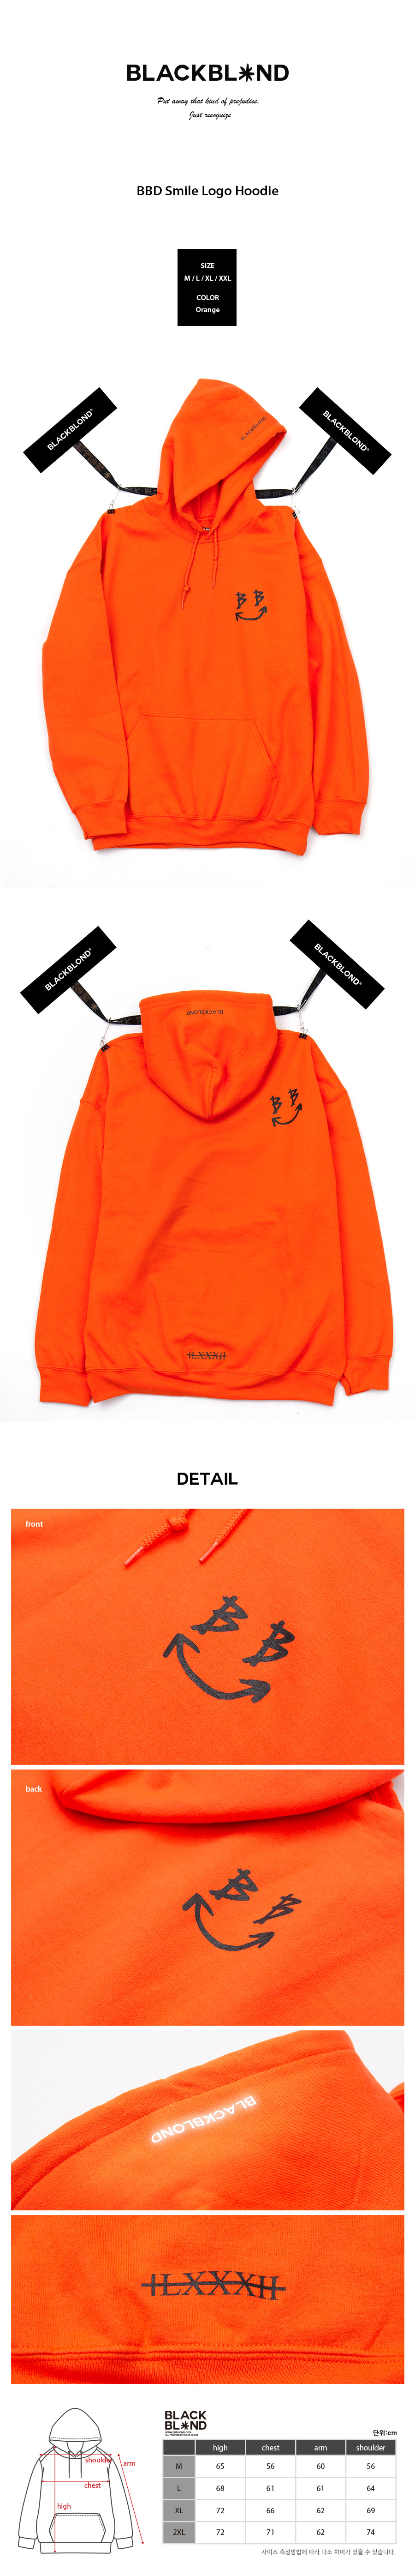 블랙블론드 BLACKBLOND - BBD Smile Logo Hoodie (Orange)